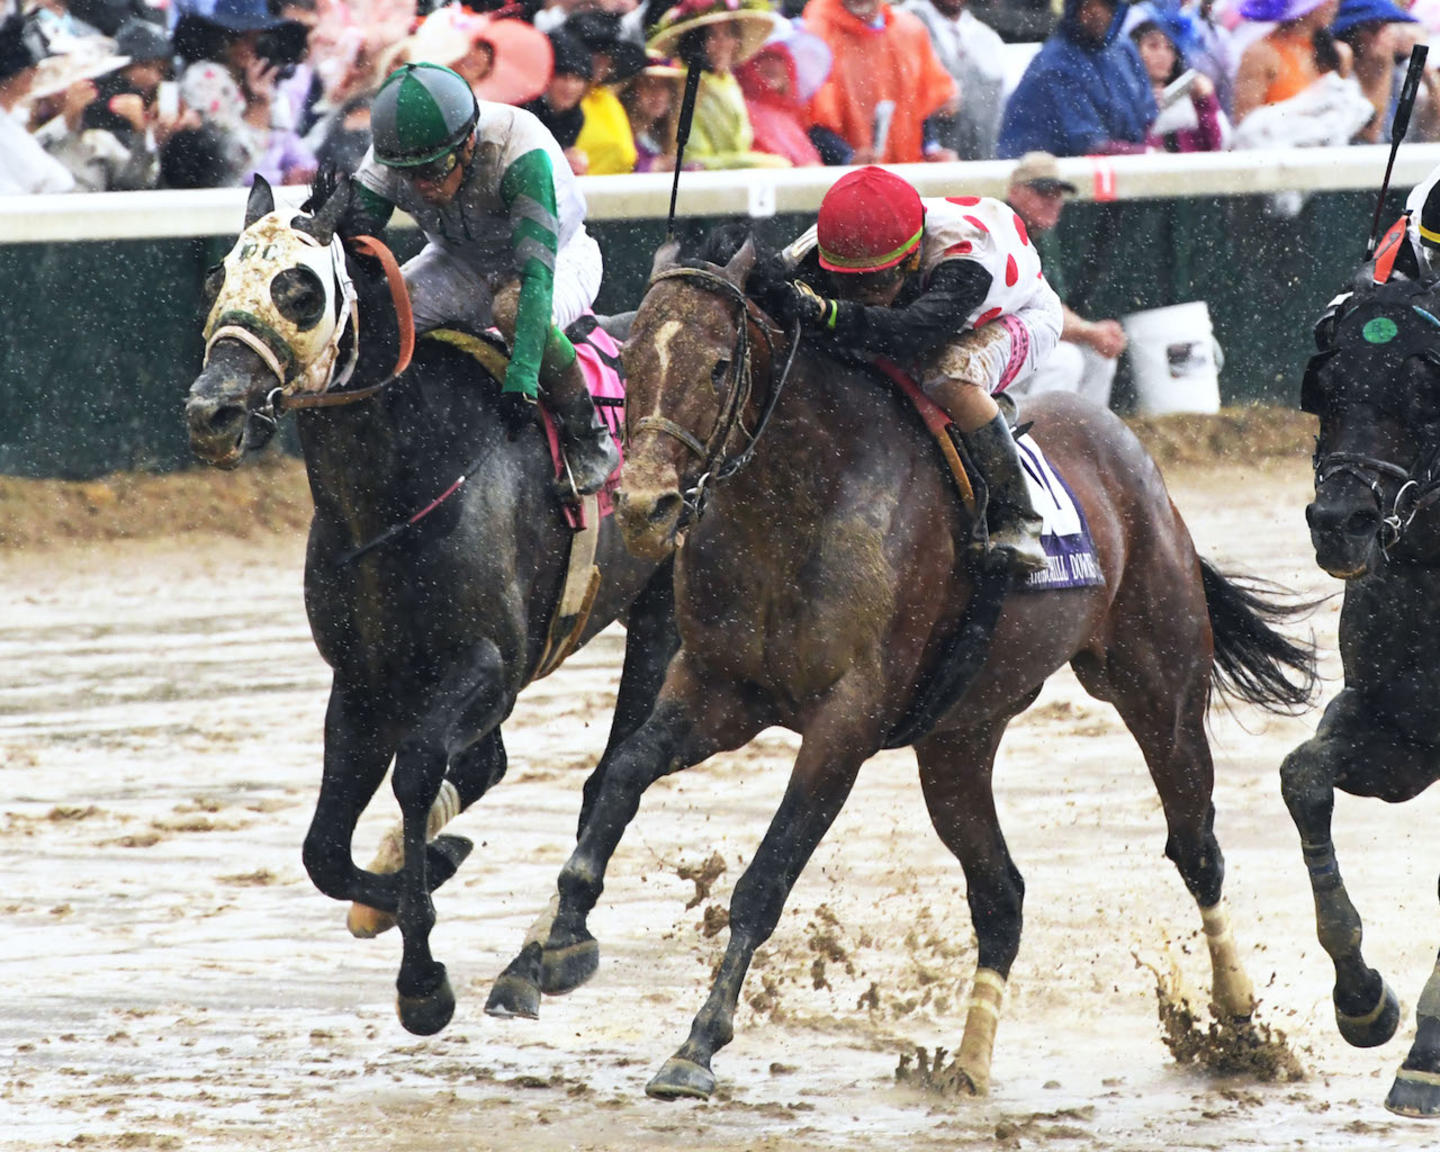 LIMOUSINE LIBERAL - The Churchill Downs G2 - 84th Running - 05-05-18 - R08 - CD - Inside Finish 1